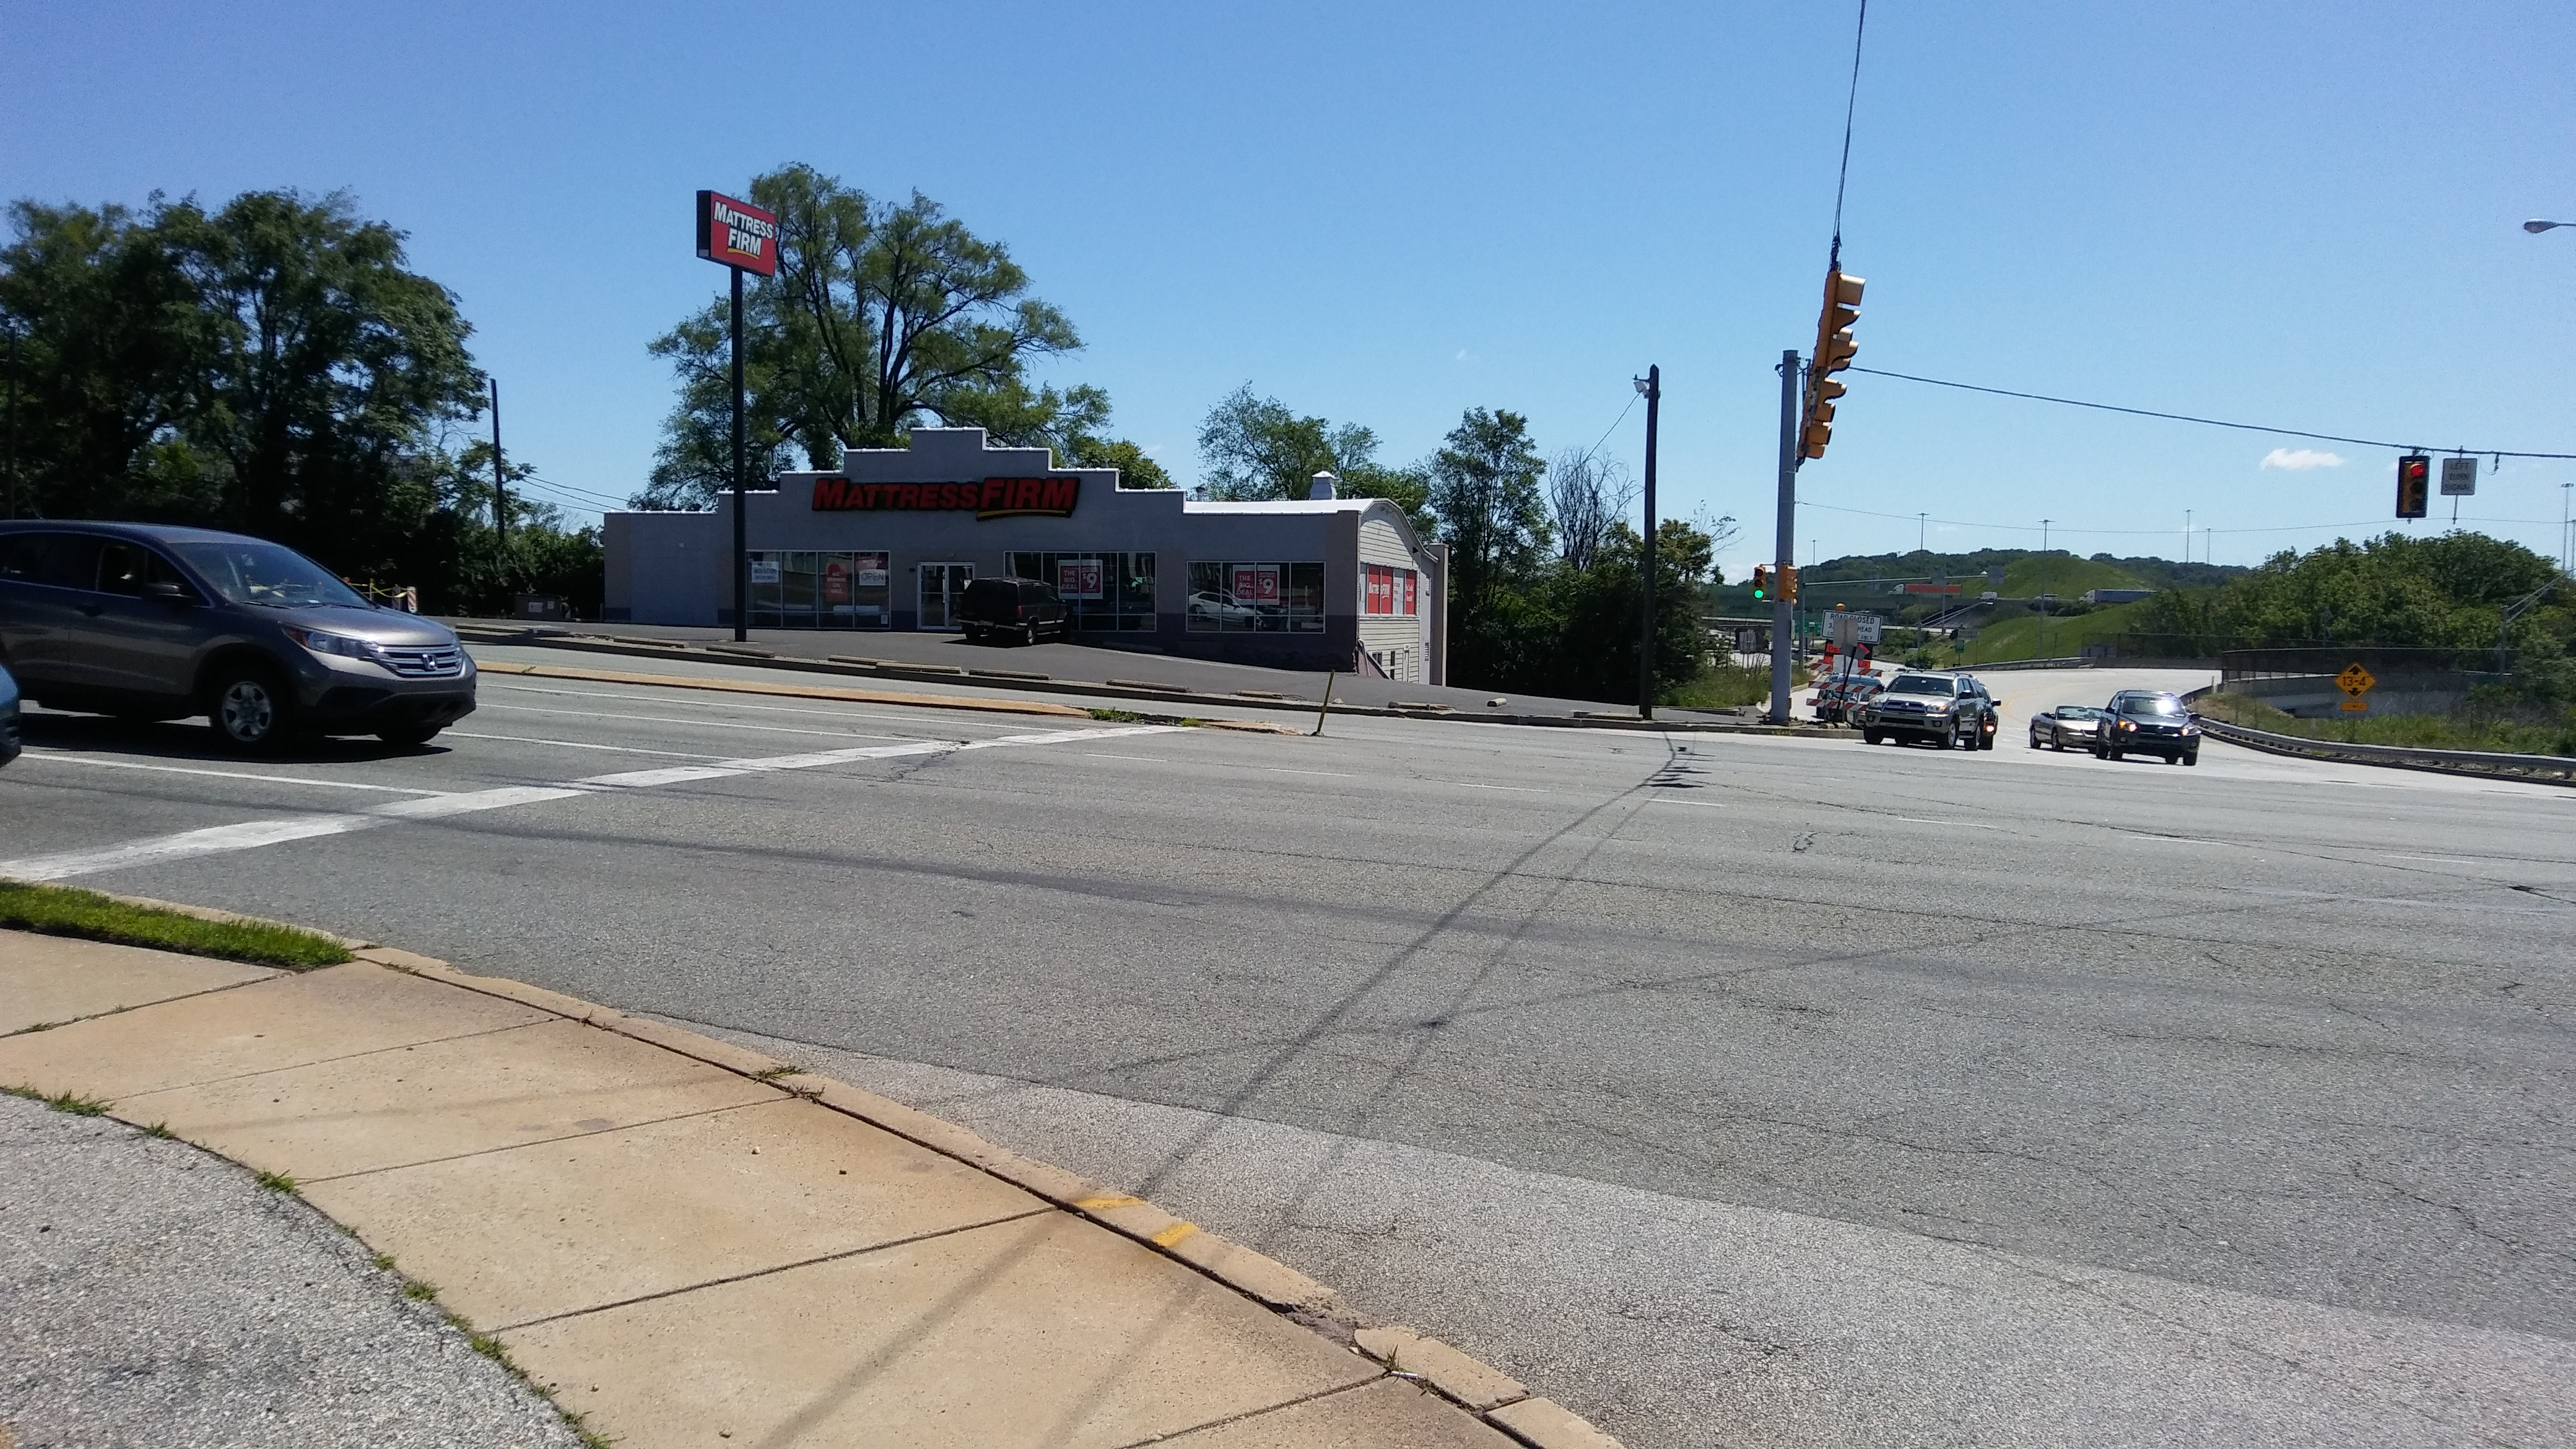 Mattress Firm Plymouth Meeting image 3